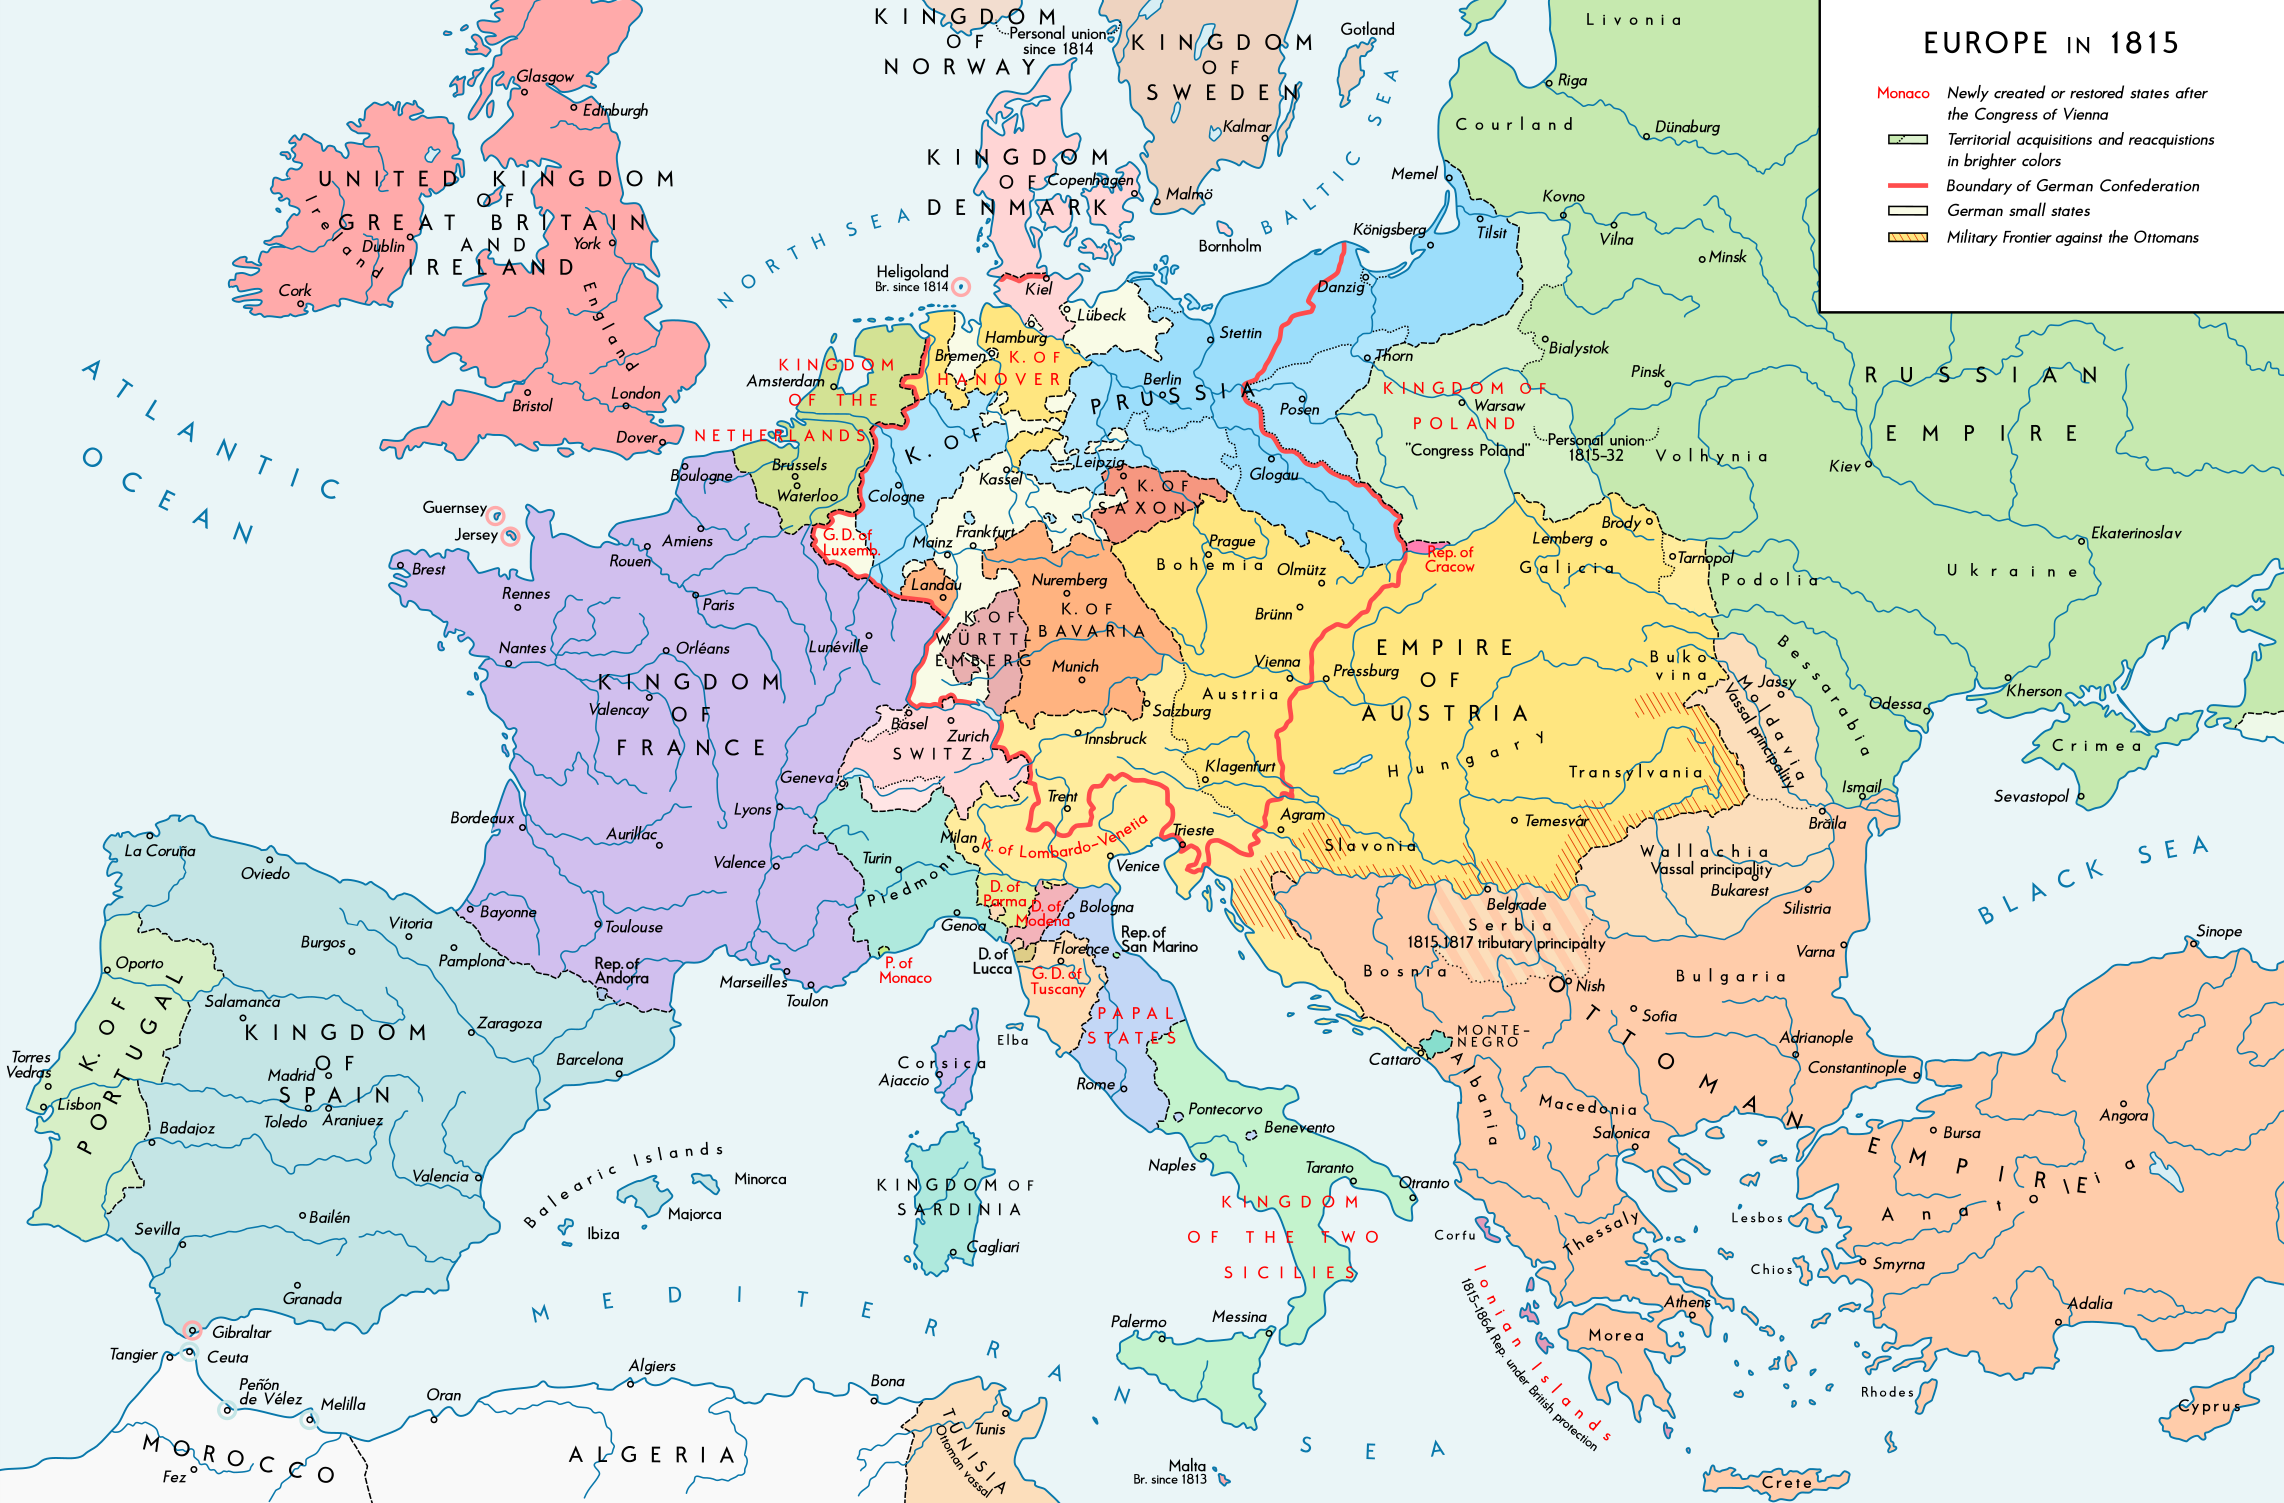 File:Europe 1815 map en.png - Wikimedia Commons